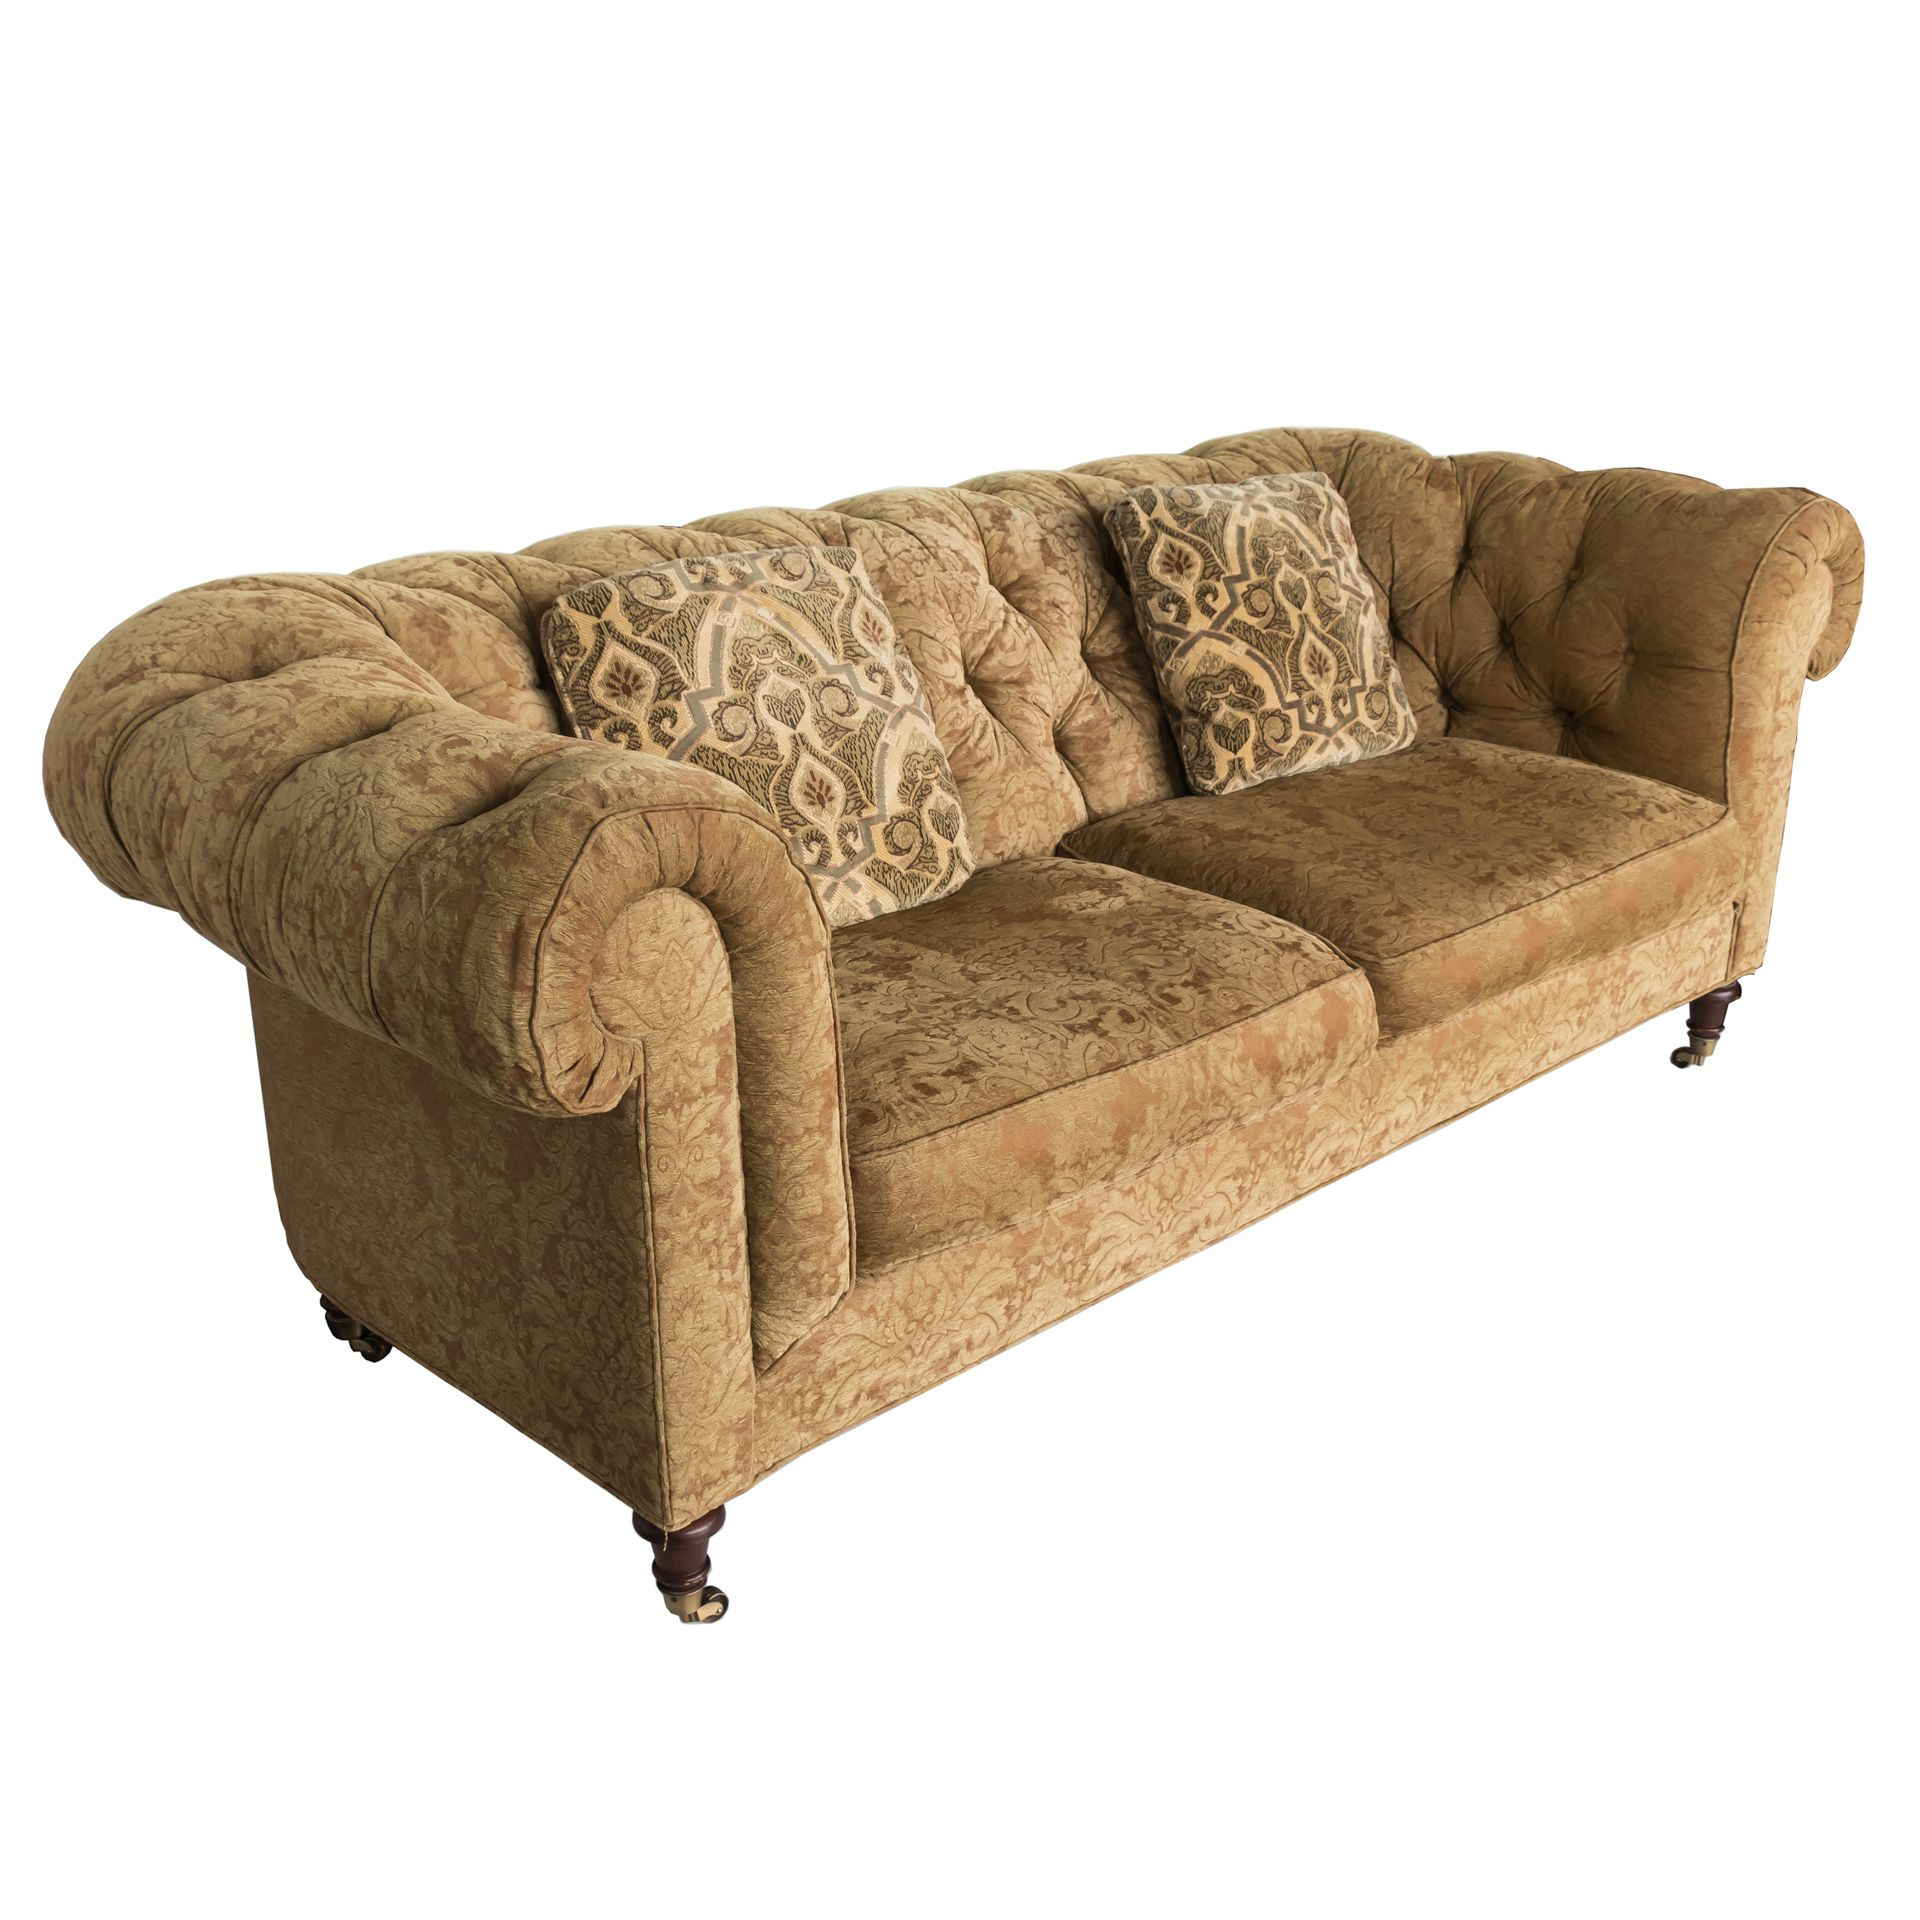 This Chesterfield Style Sofa From Lillian August Is Filled With A